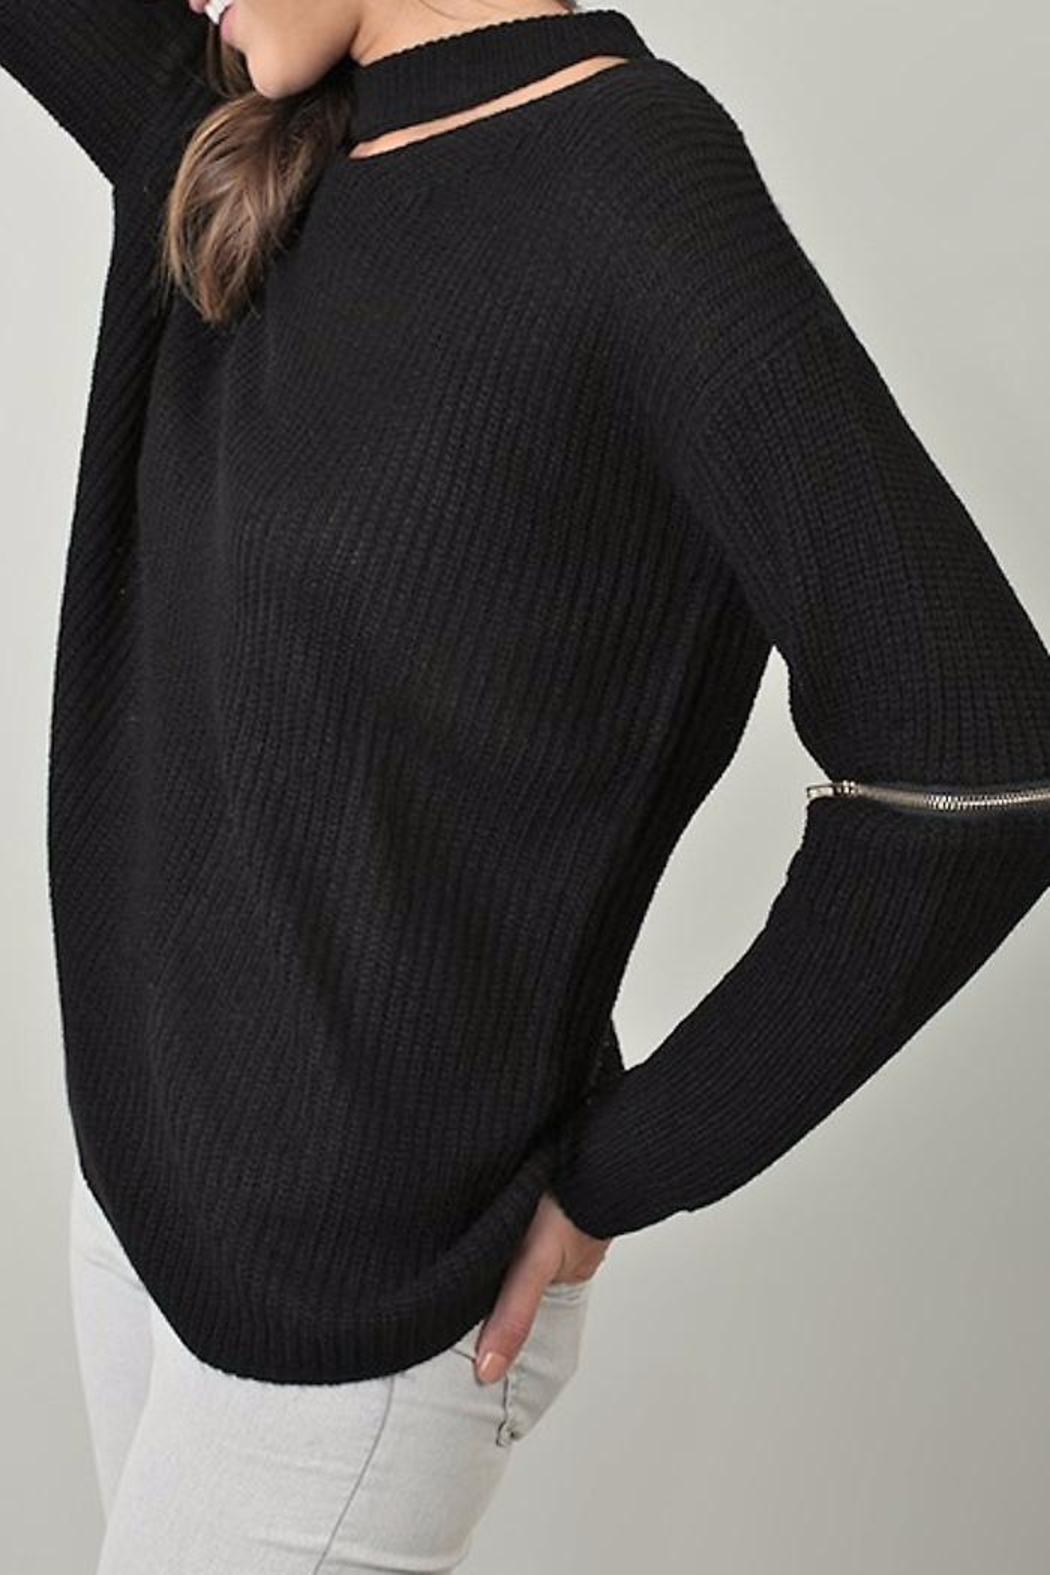 People Outfitter Knit Zipper Sweater - Side Cropped Image